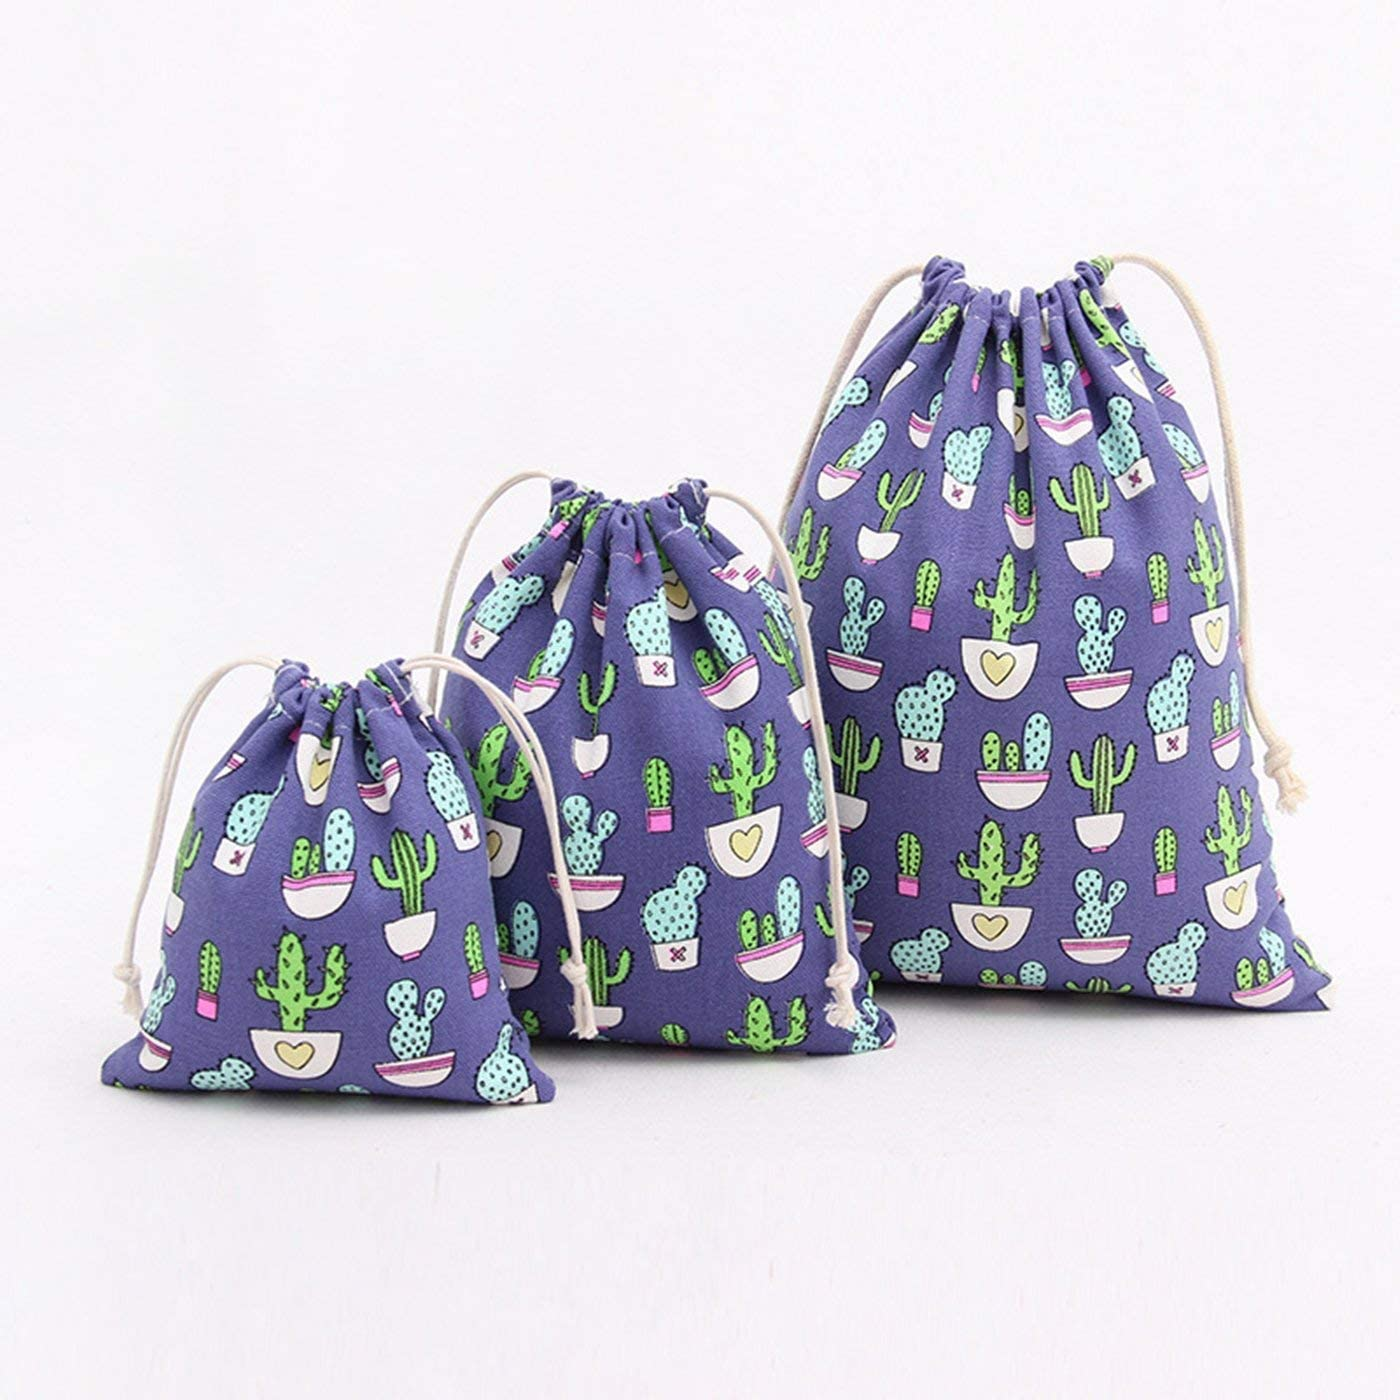 Large 25 x 30 cm, Medium 19 X 23 cm, Little 14 X 16 cm Amoyie 3 Pieces Drawstring Bag for Kids Stuff Cute Reusable Storage Bag for Home or Arts Supplies Carrier or Travel Cactus